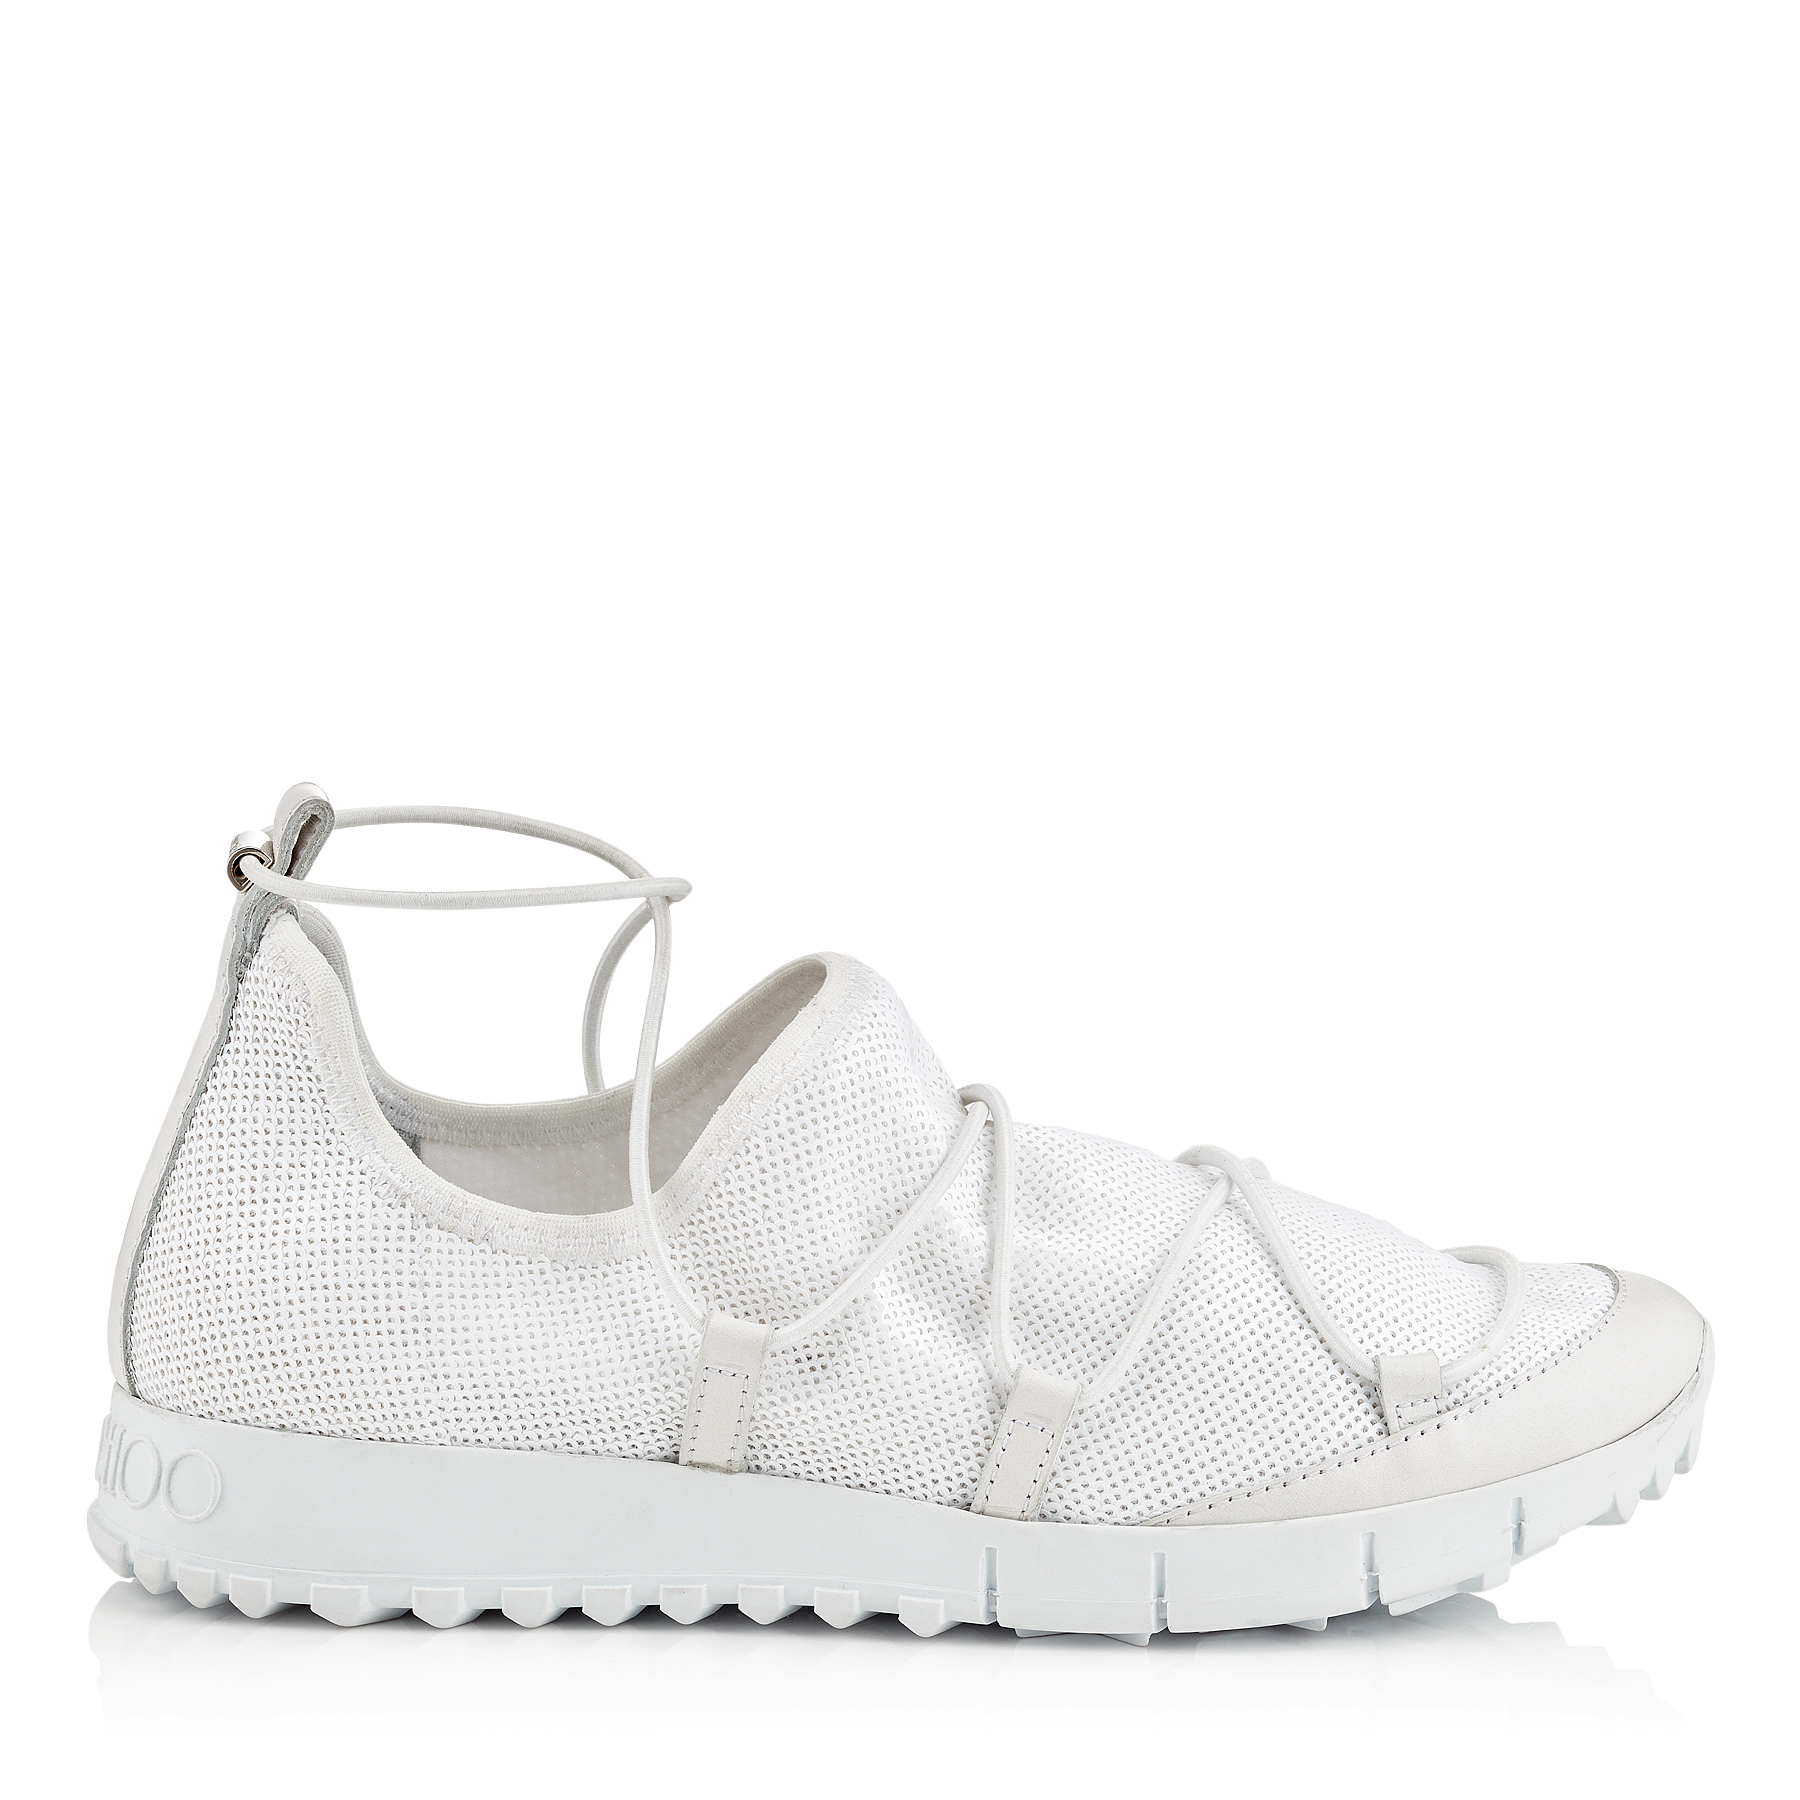 ANDREA White Stretched Pailettes Slip On Trainers by Jimmy Choo